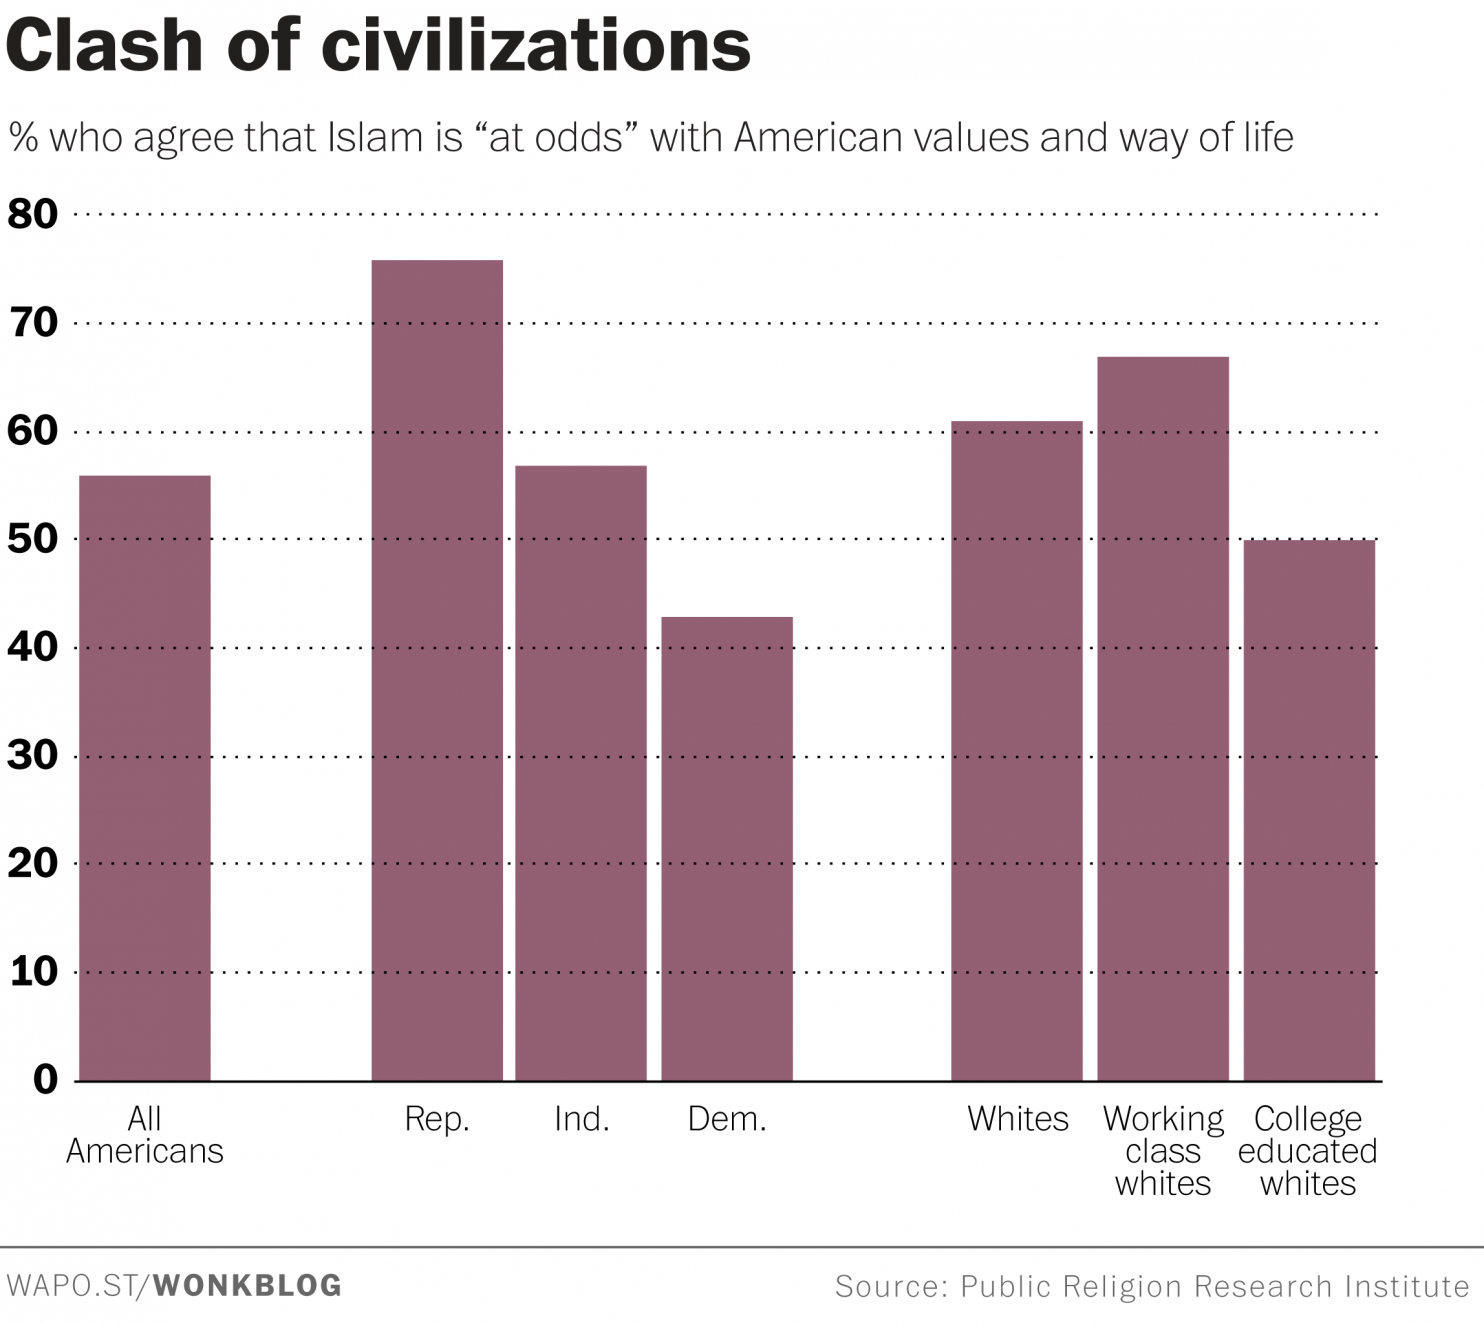 A lot of Americans think that Islam is at odds with their values